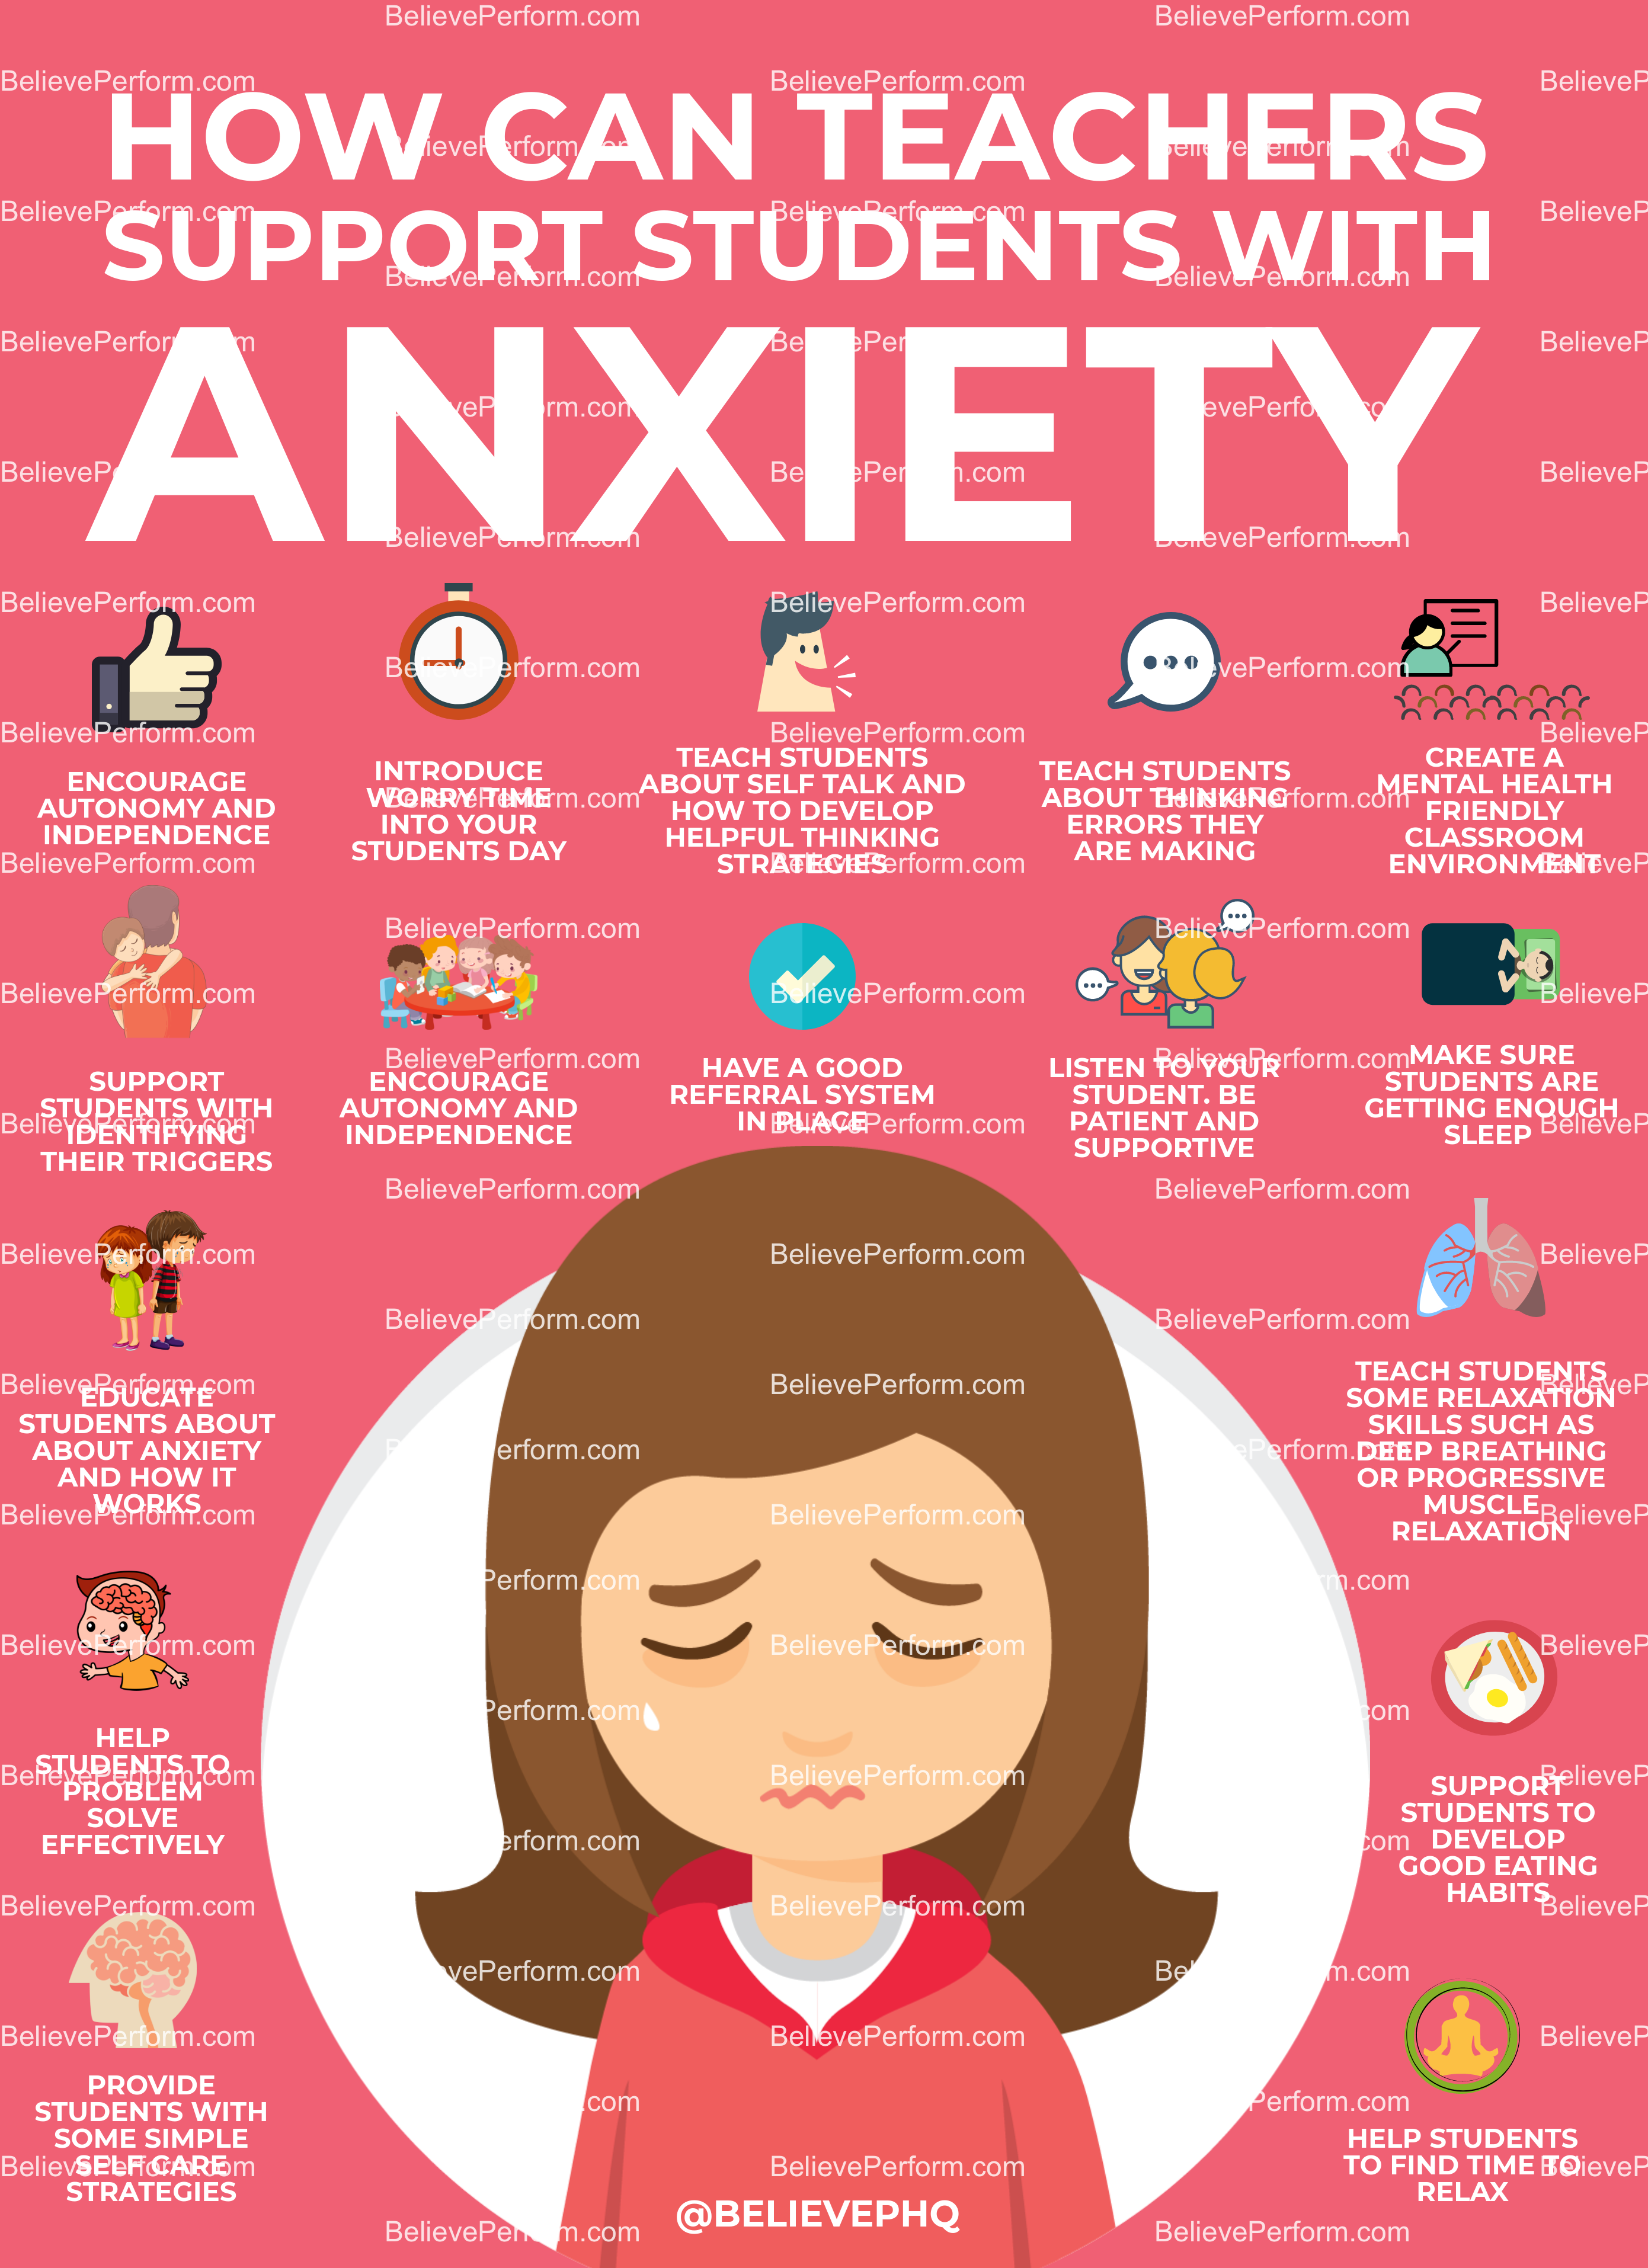 How can teachers support students with anxiety